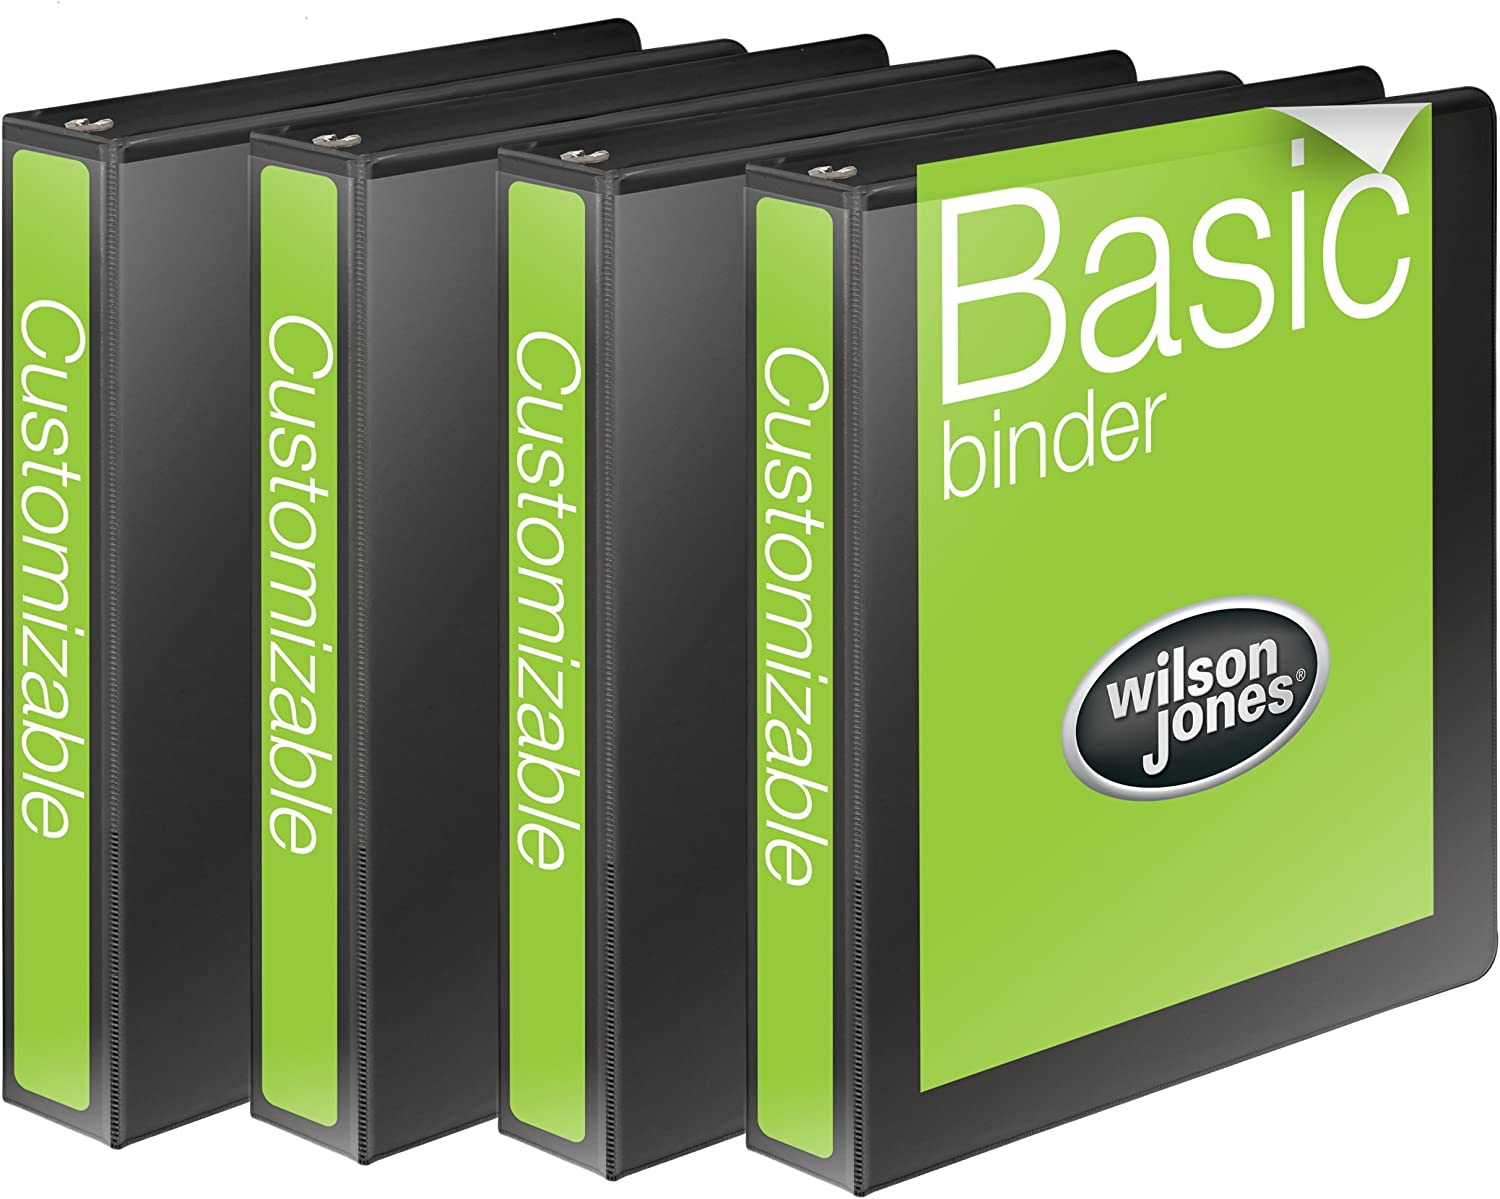 Wilson Jones 1 Inch 3 Ring Binder, Basic Round Ring View Binder, Black, 4 Pack (W70362-14BPP) : Office Products